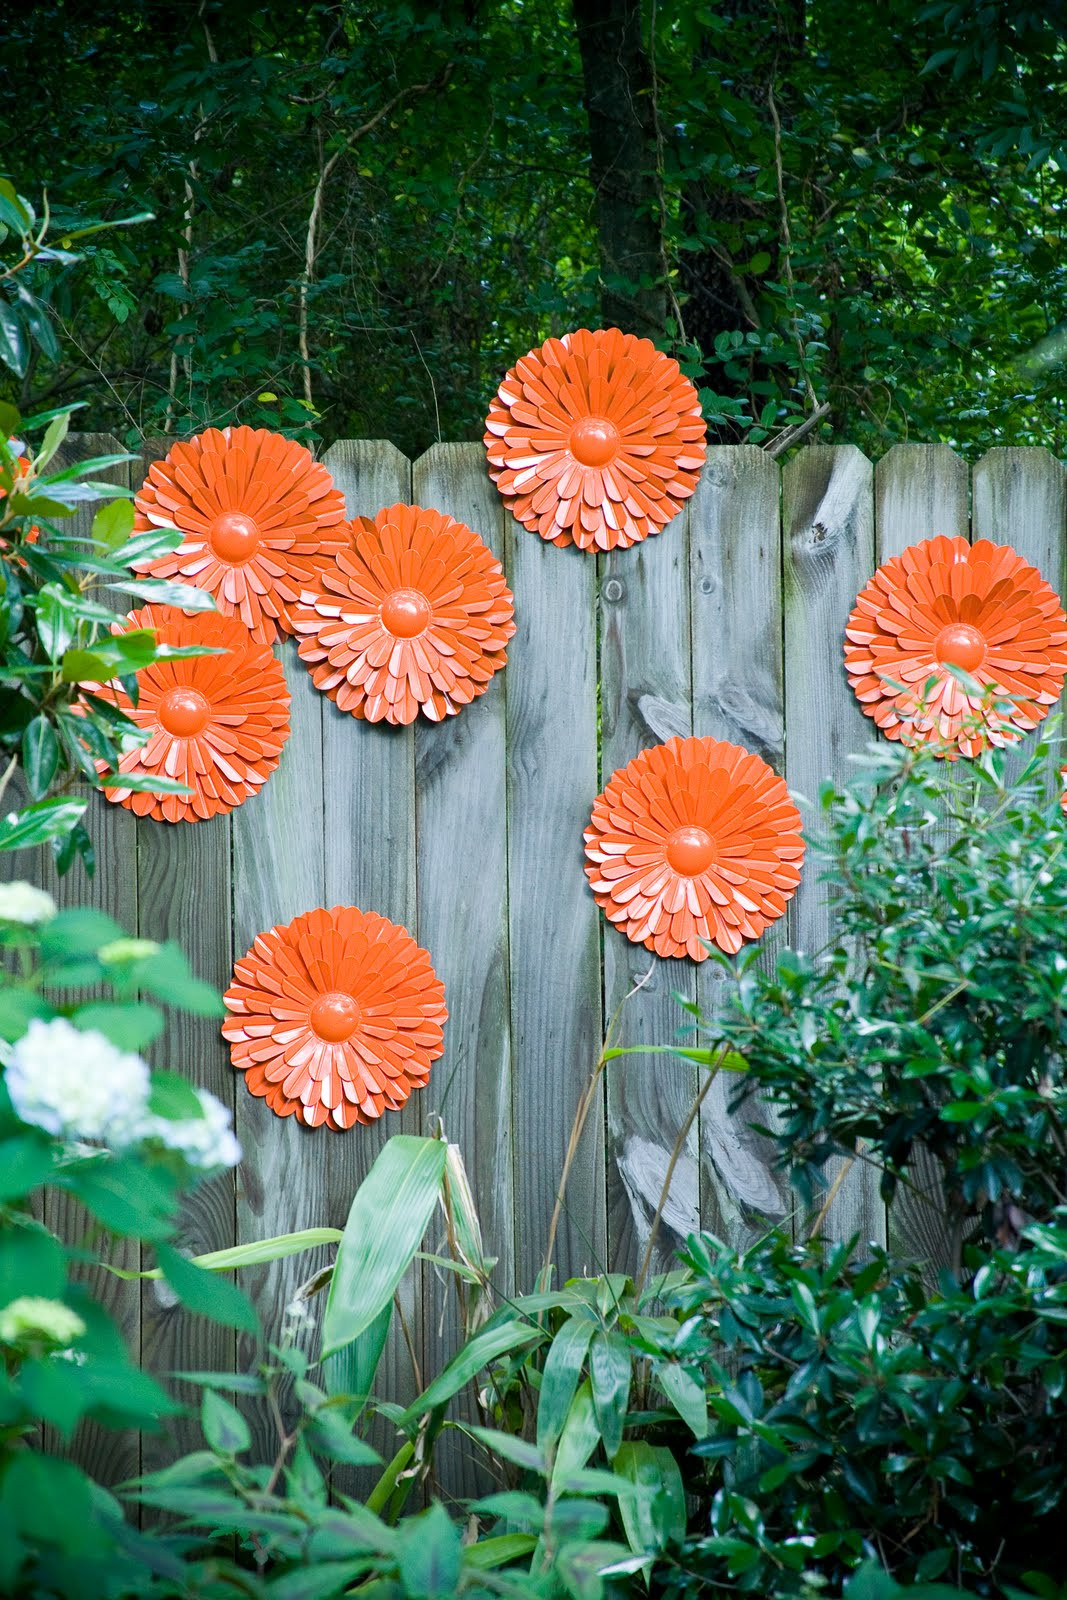 Best ideas about DIY Garden Art . Save or Pin 16 Amazing DIY Ideas to Spruce Up Your Garden Now.